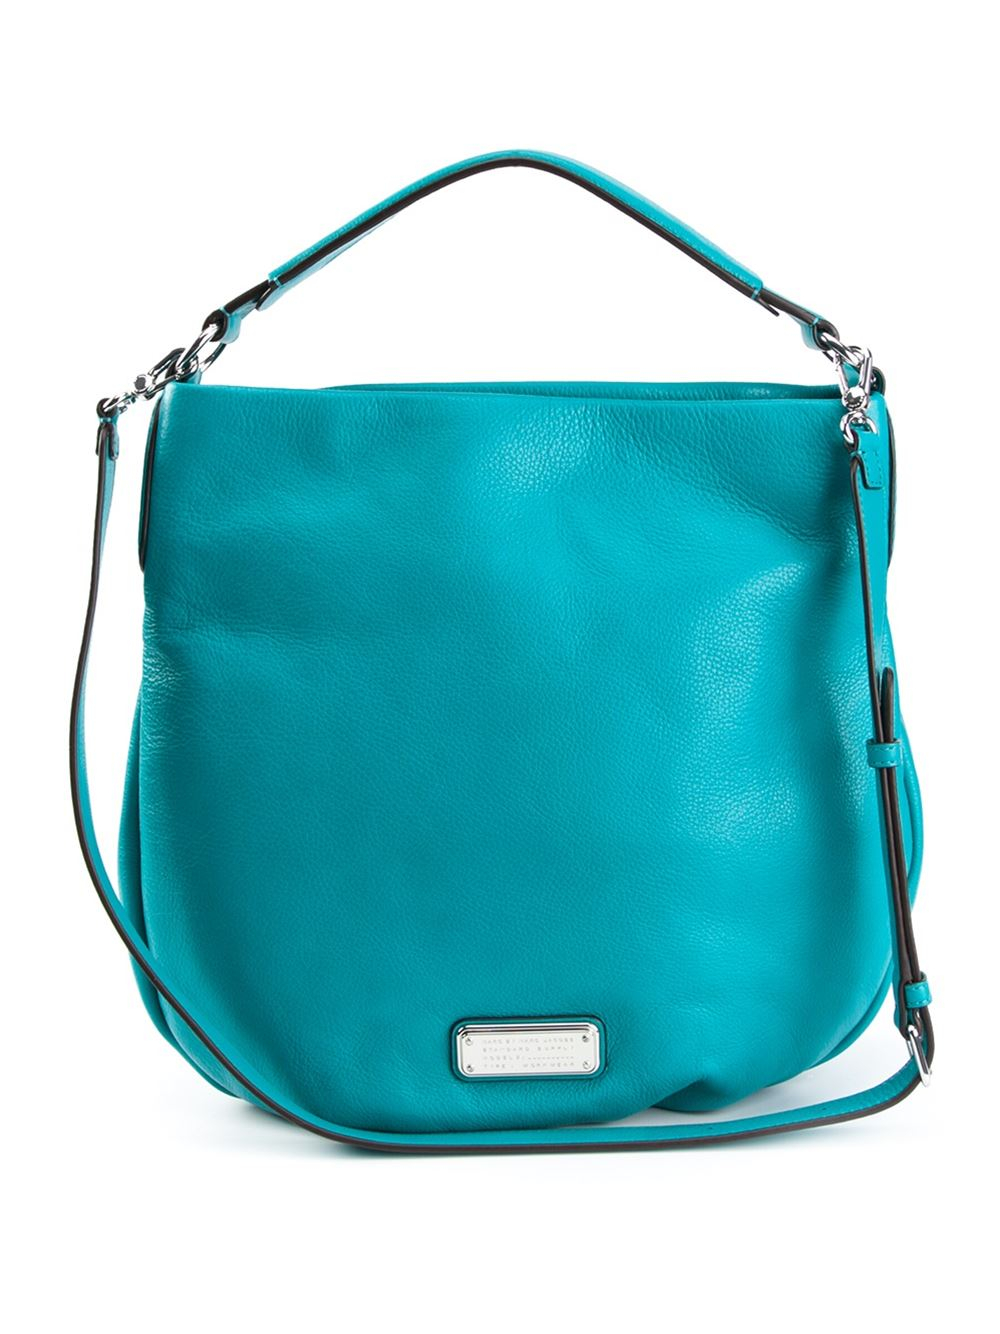 marc by marc new q hillier leather hobo bag in blue